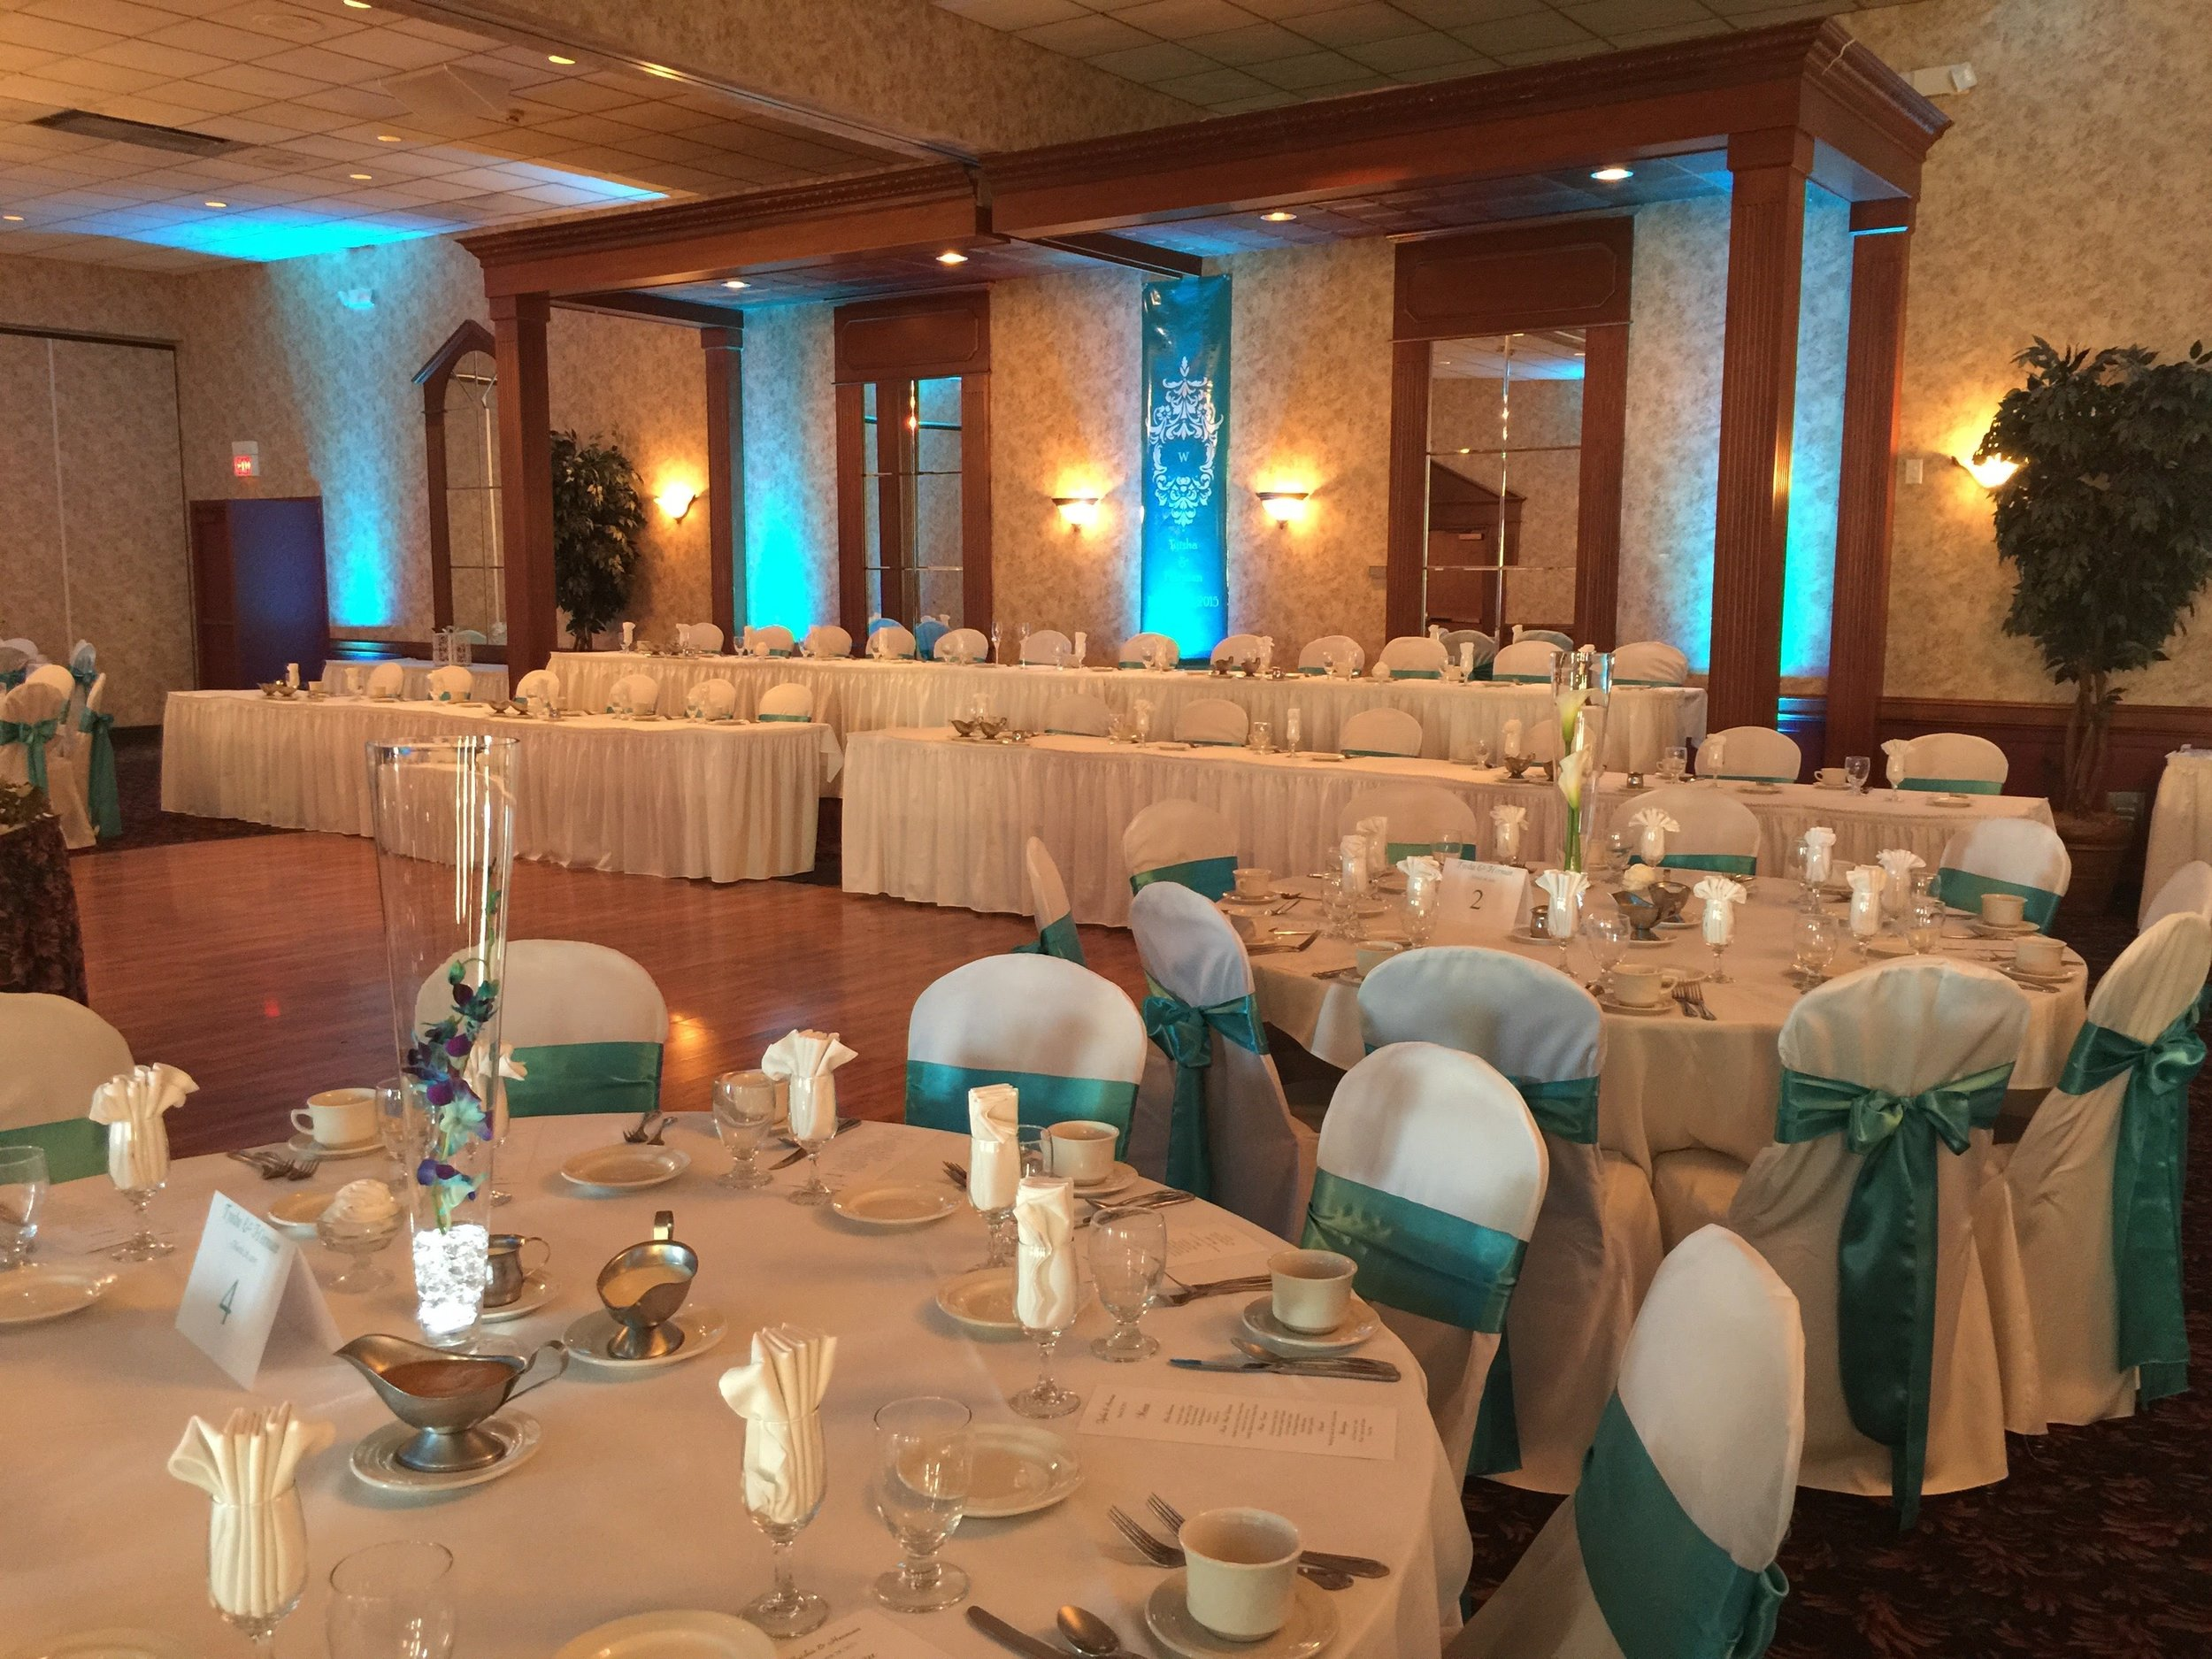 Setup at Our Reception Hall in Amherst, NY